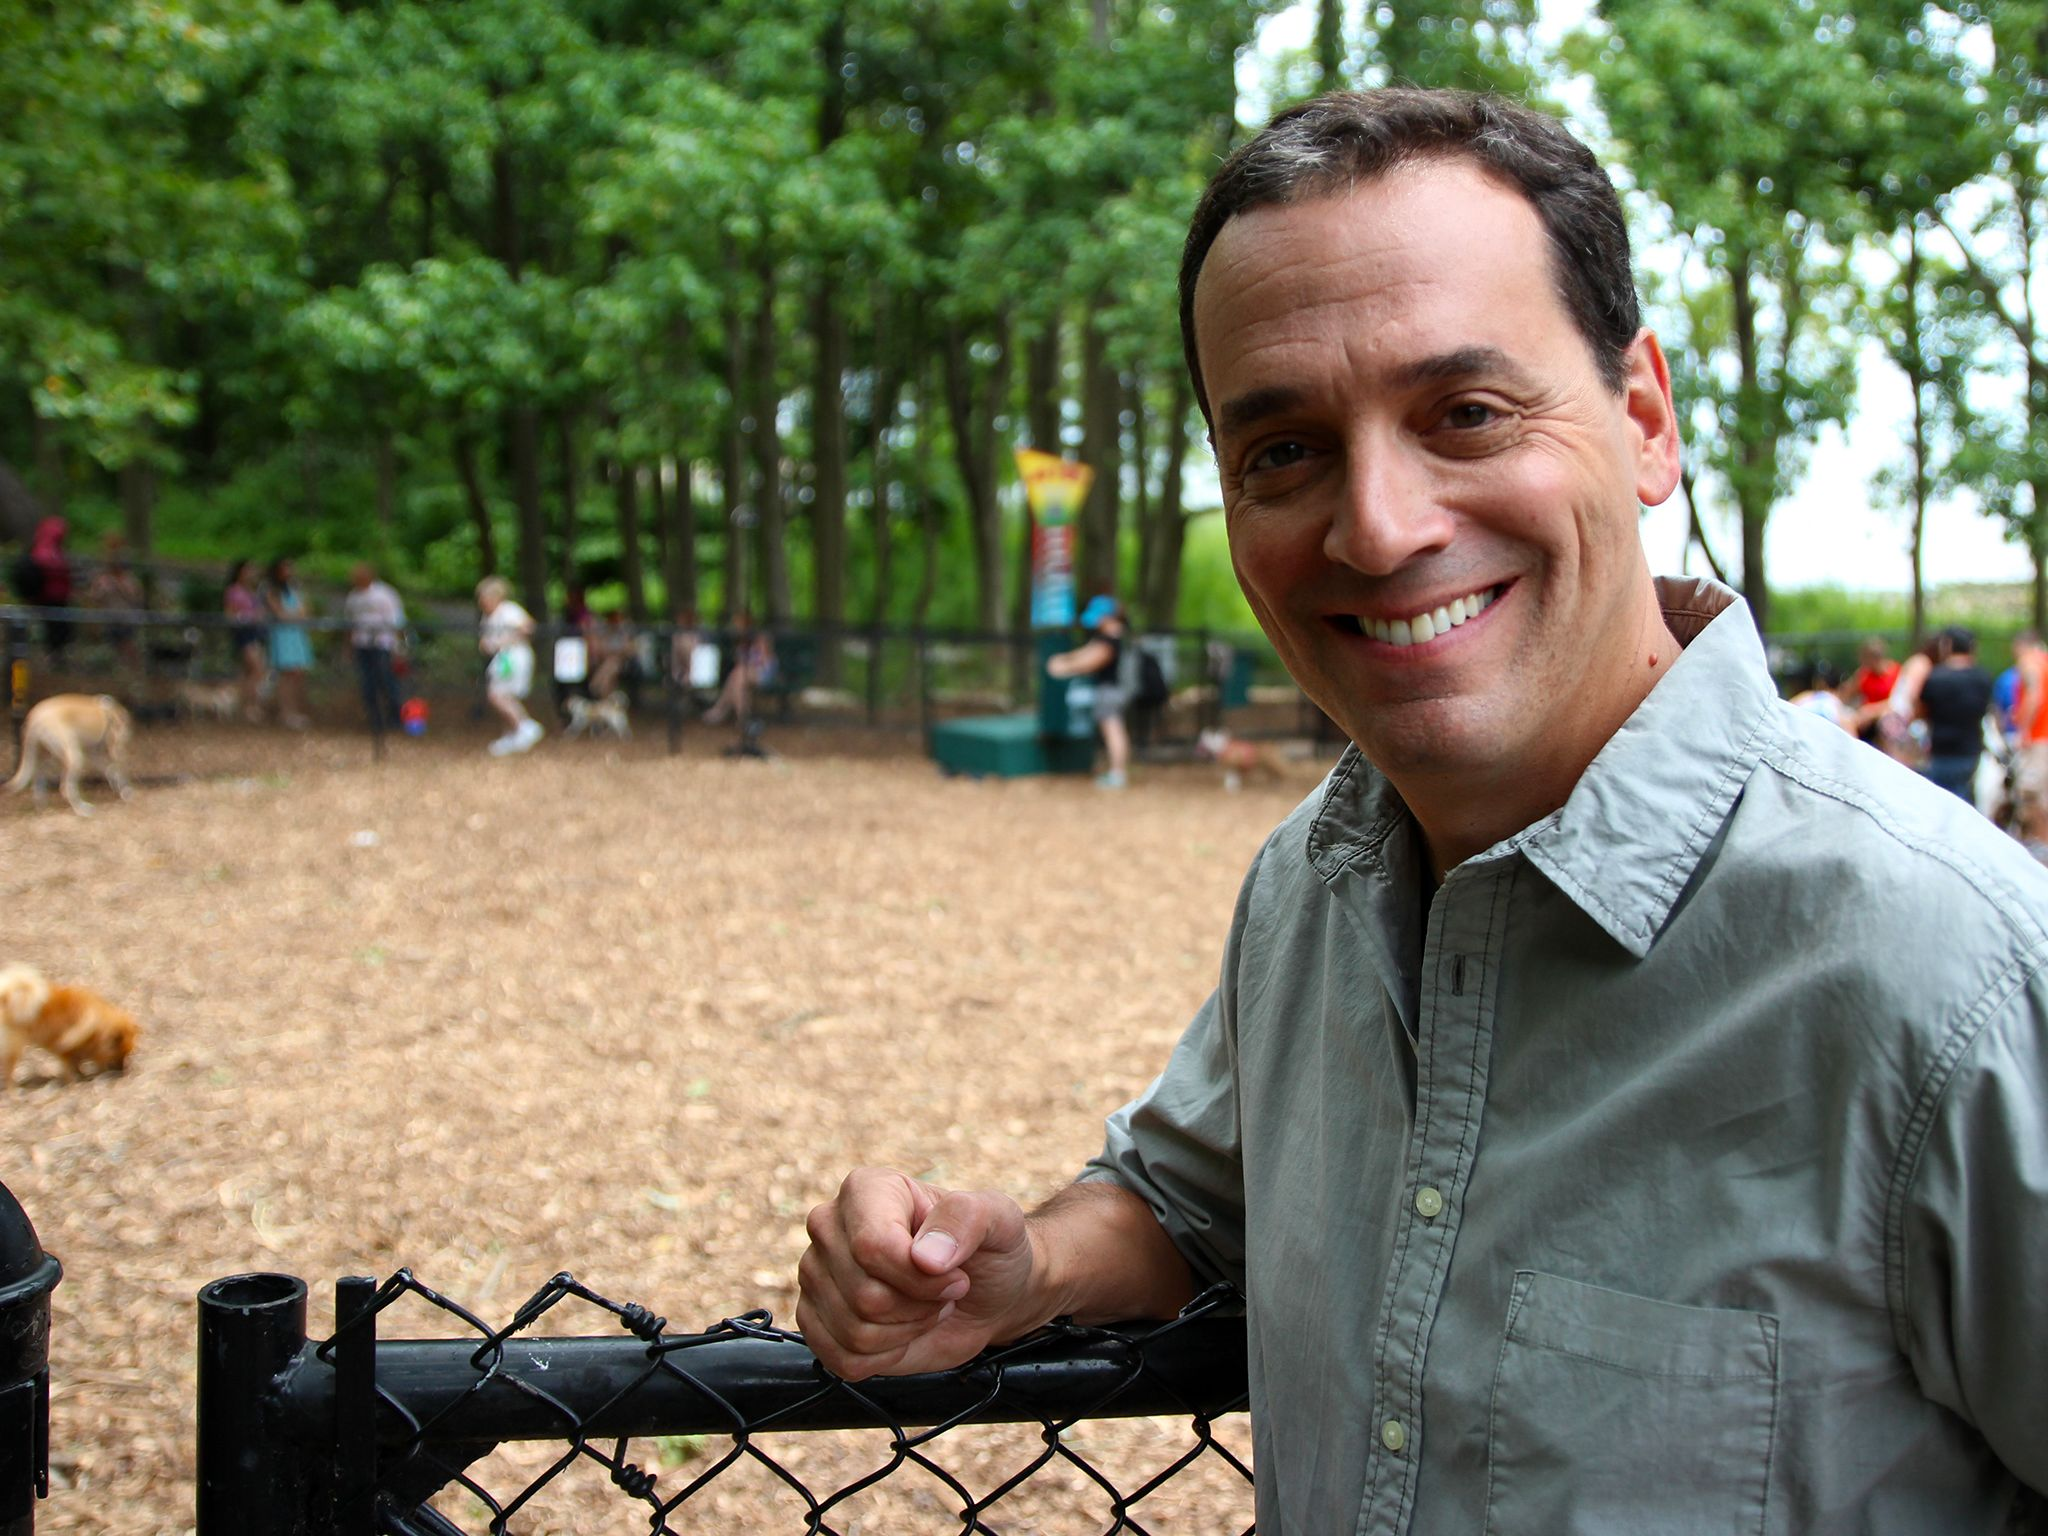 Staten Island, NY, USA: Presenter Daniel Pink heads to a dog park to see how the experiments are ... [Photo of the day - November, 2014]